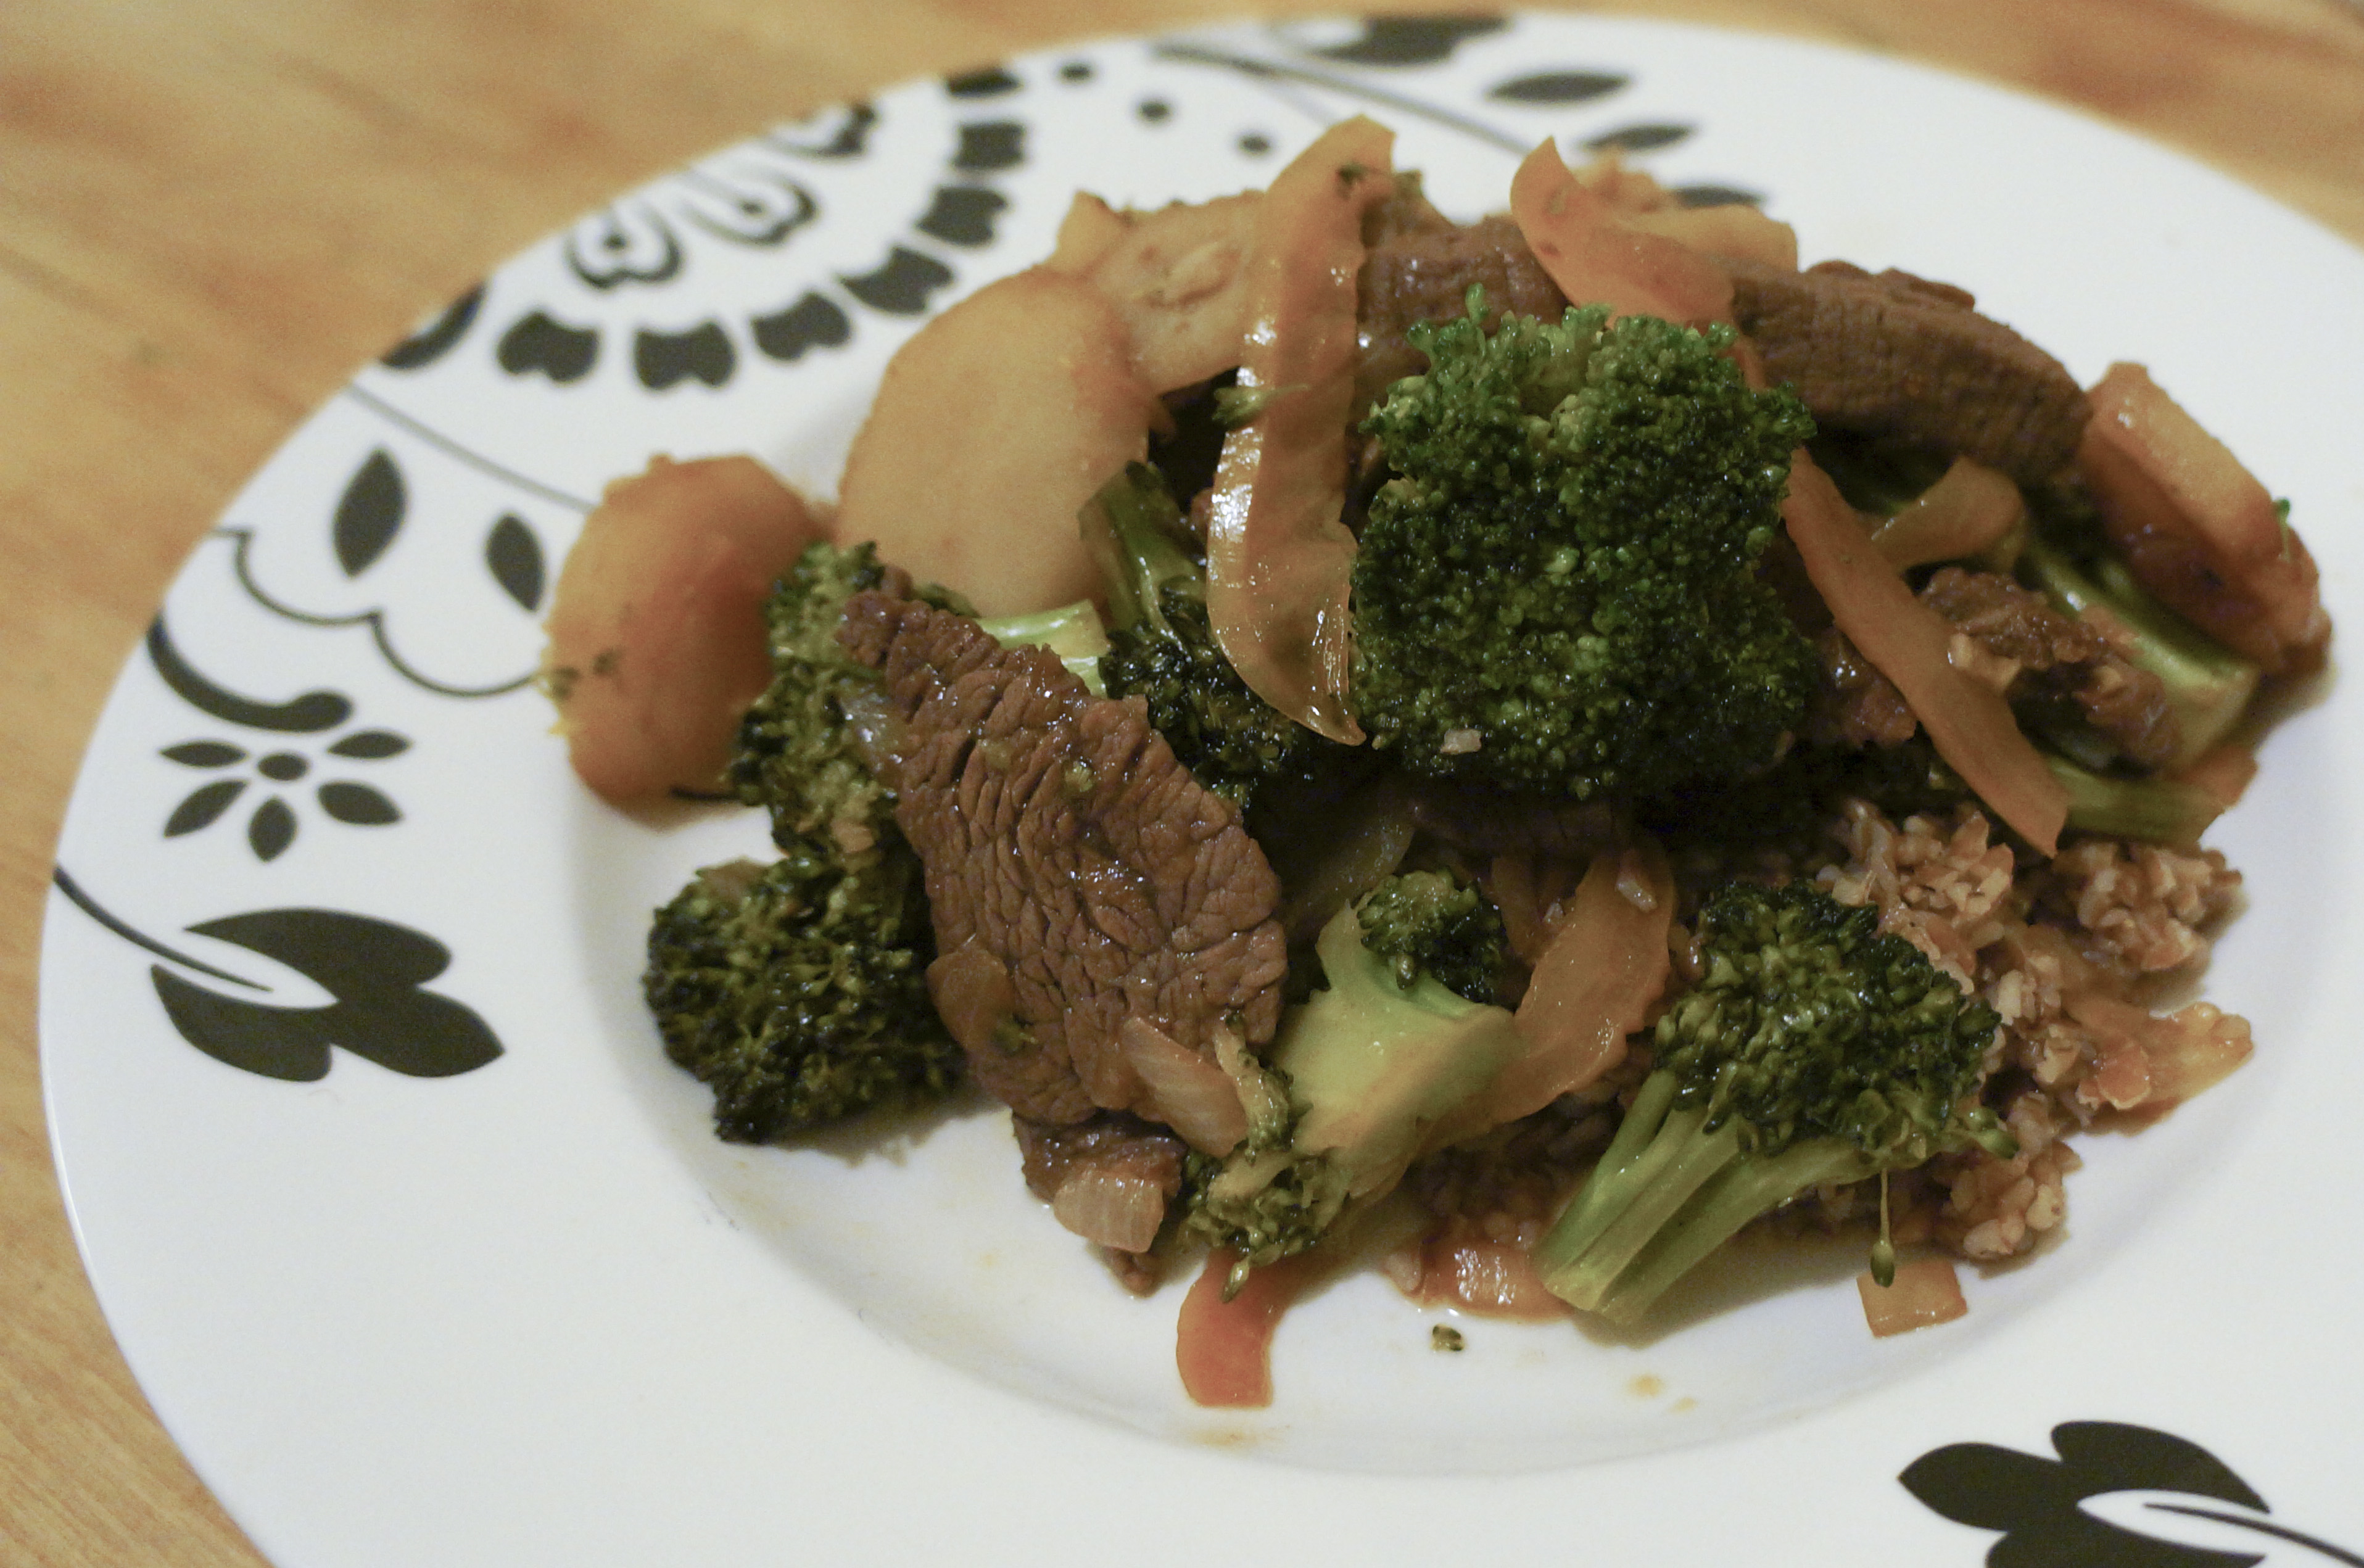 Delicious Beef Tenderloin and Broccoli Stir Fry